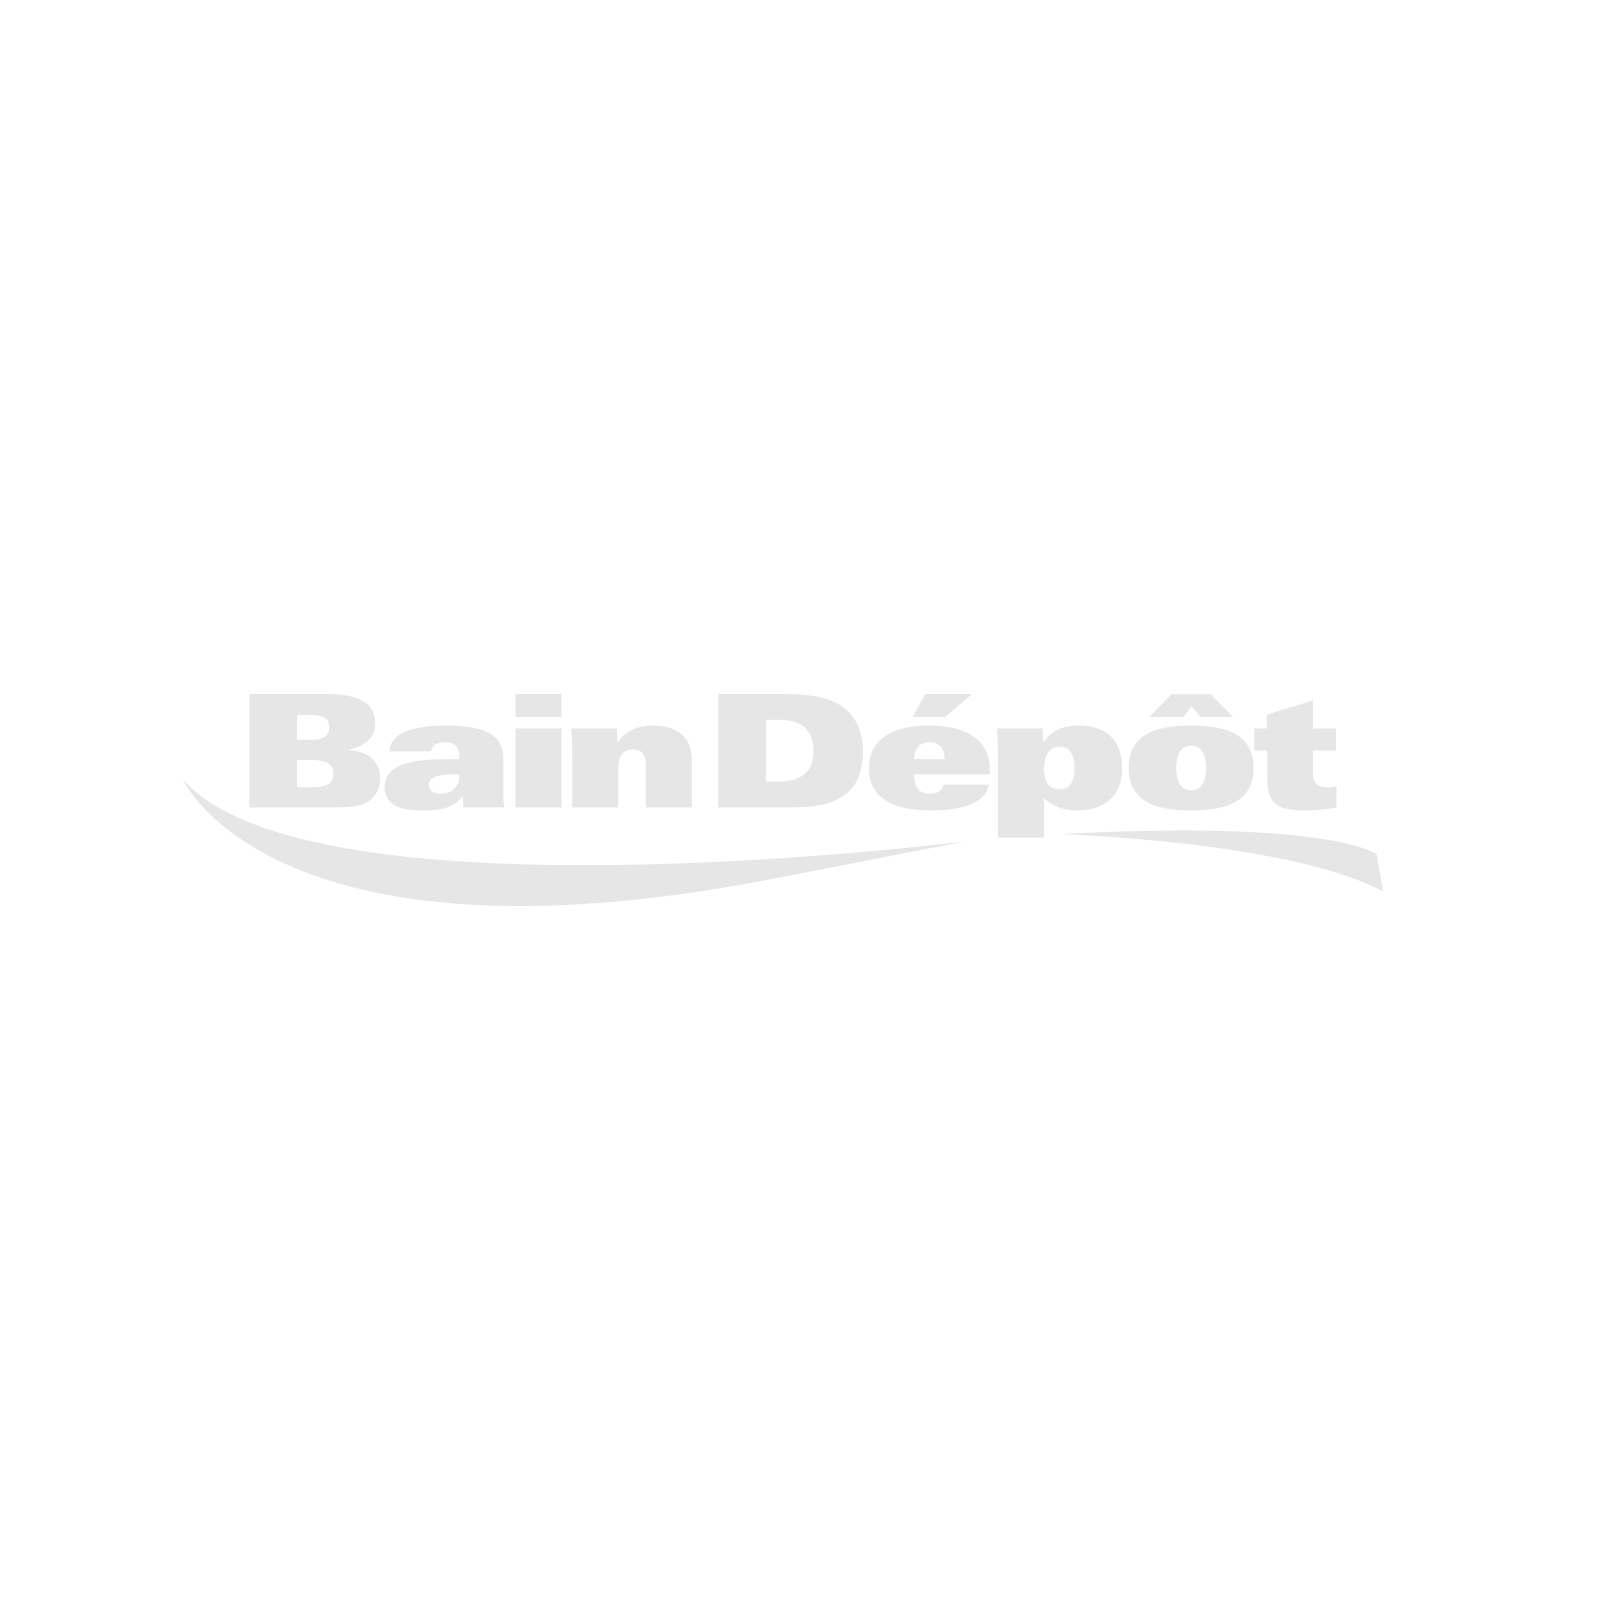 Two-piece toilet with round-front bowl TERRY